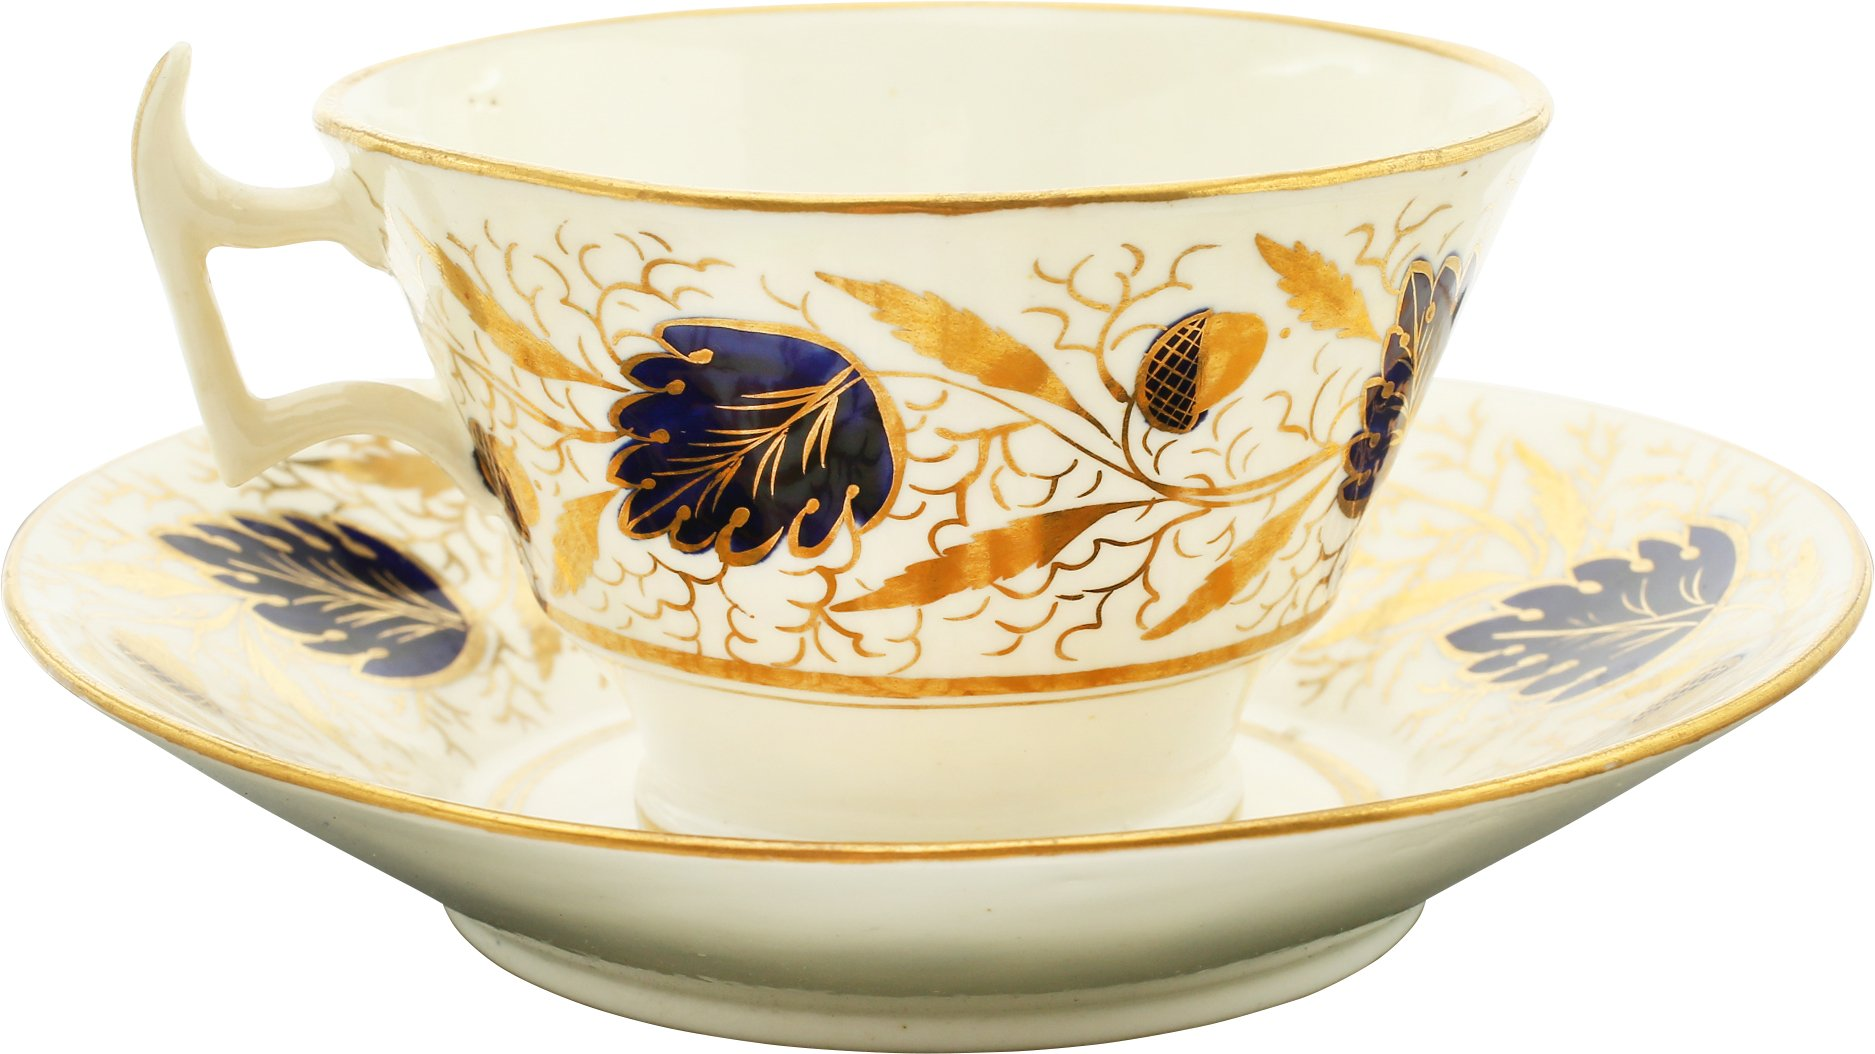 COALPORT PORCELAIN TEA CUP AND SAUCER, C.1815-20